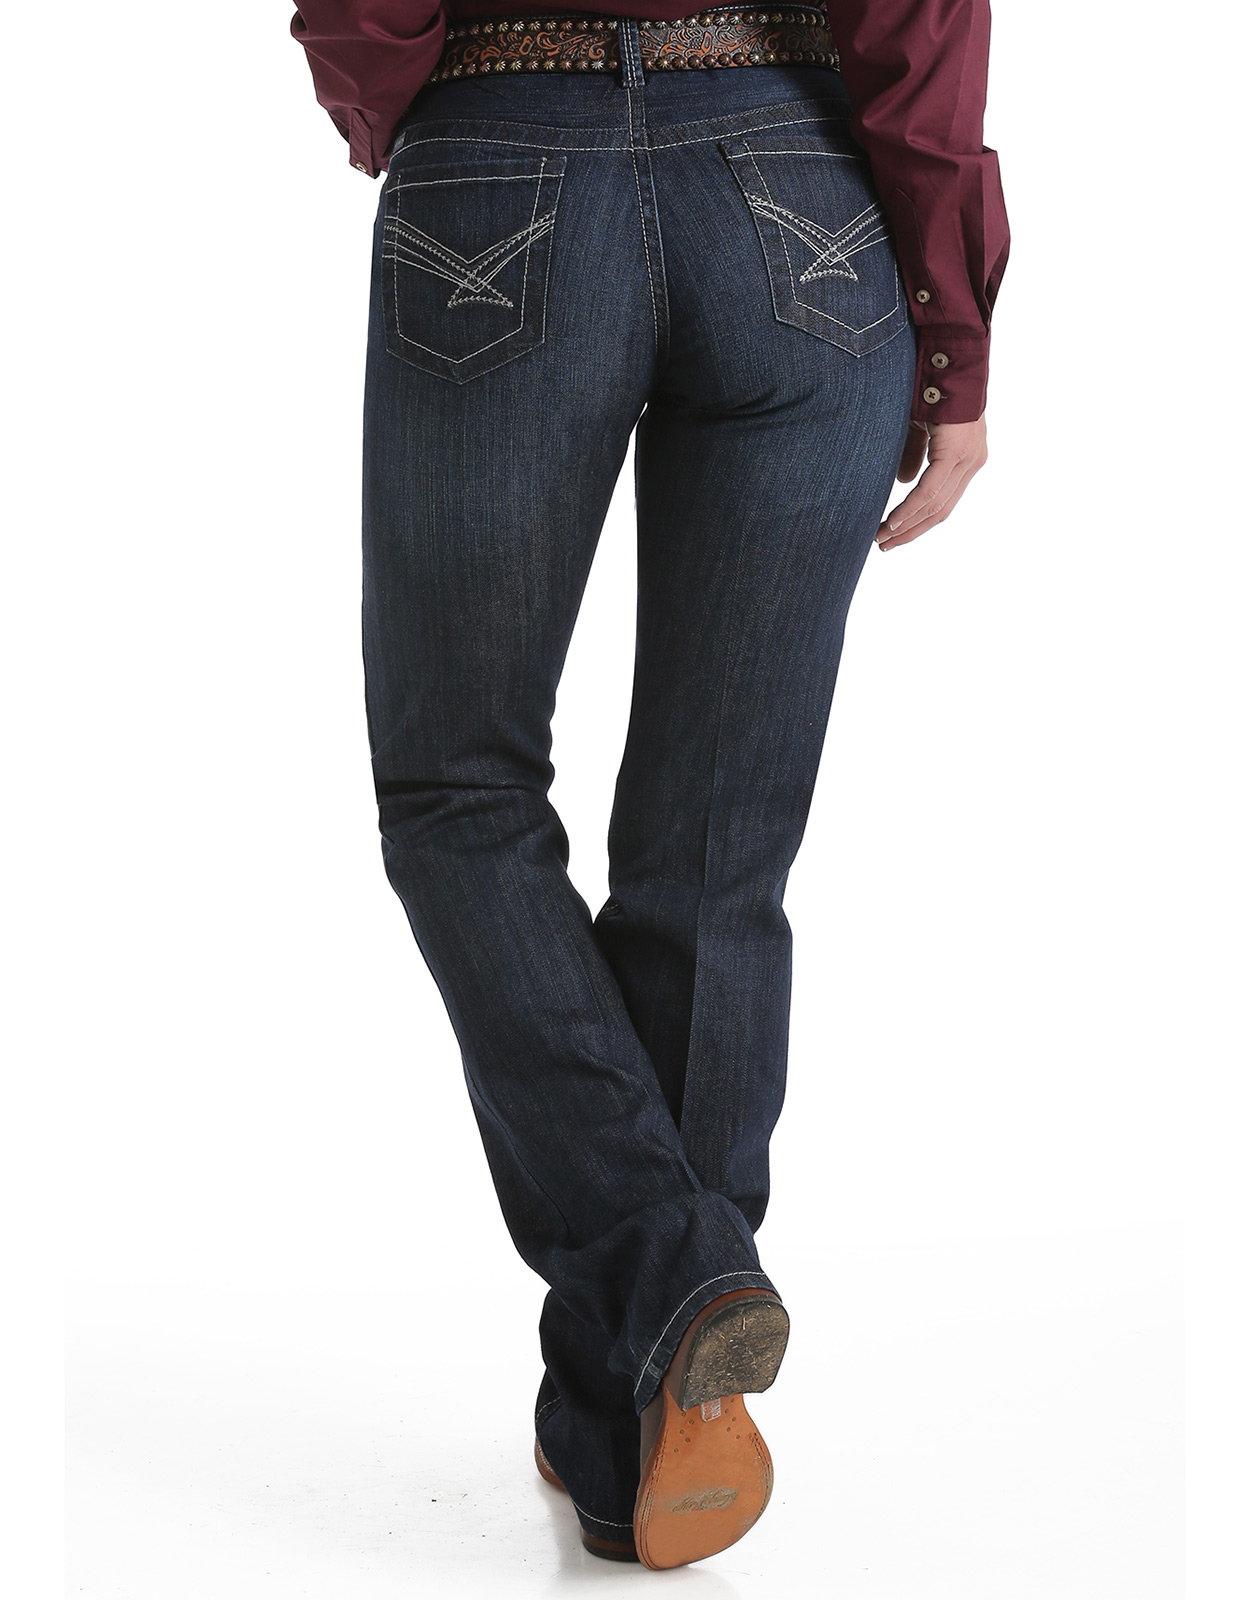 Cinch Women's Ada Mid Rise Relaxed Fit Boot Cut Jeans - Dark Stonewash (Closeout)